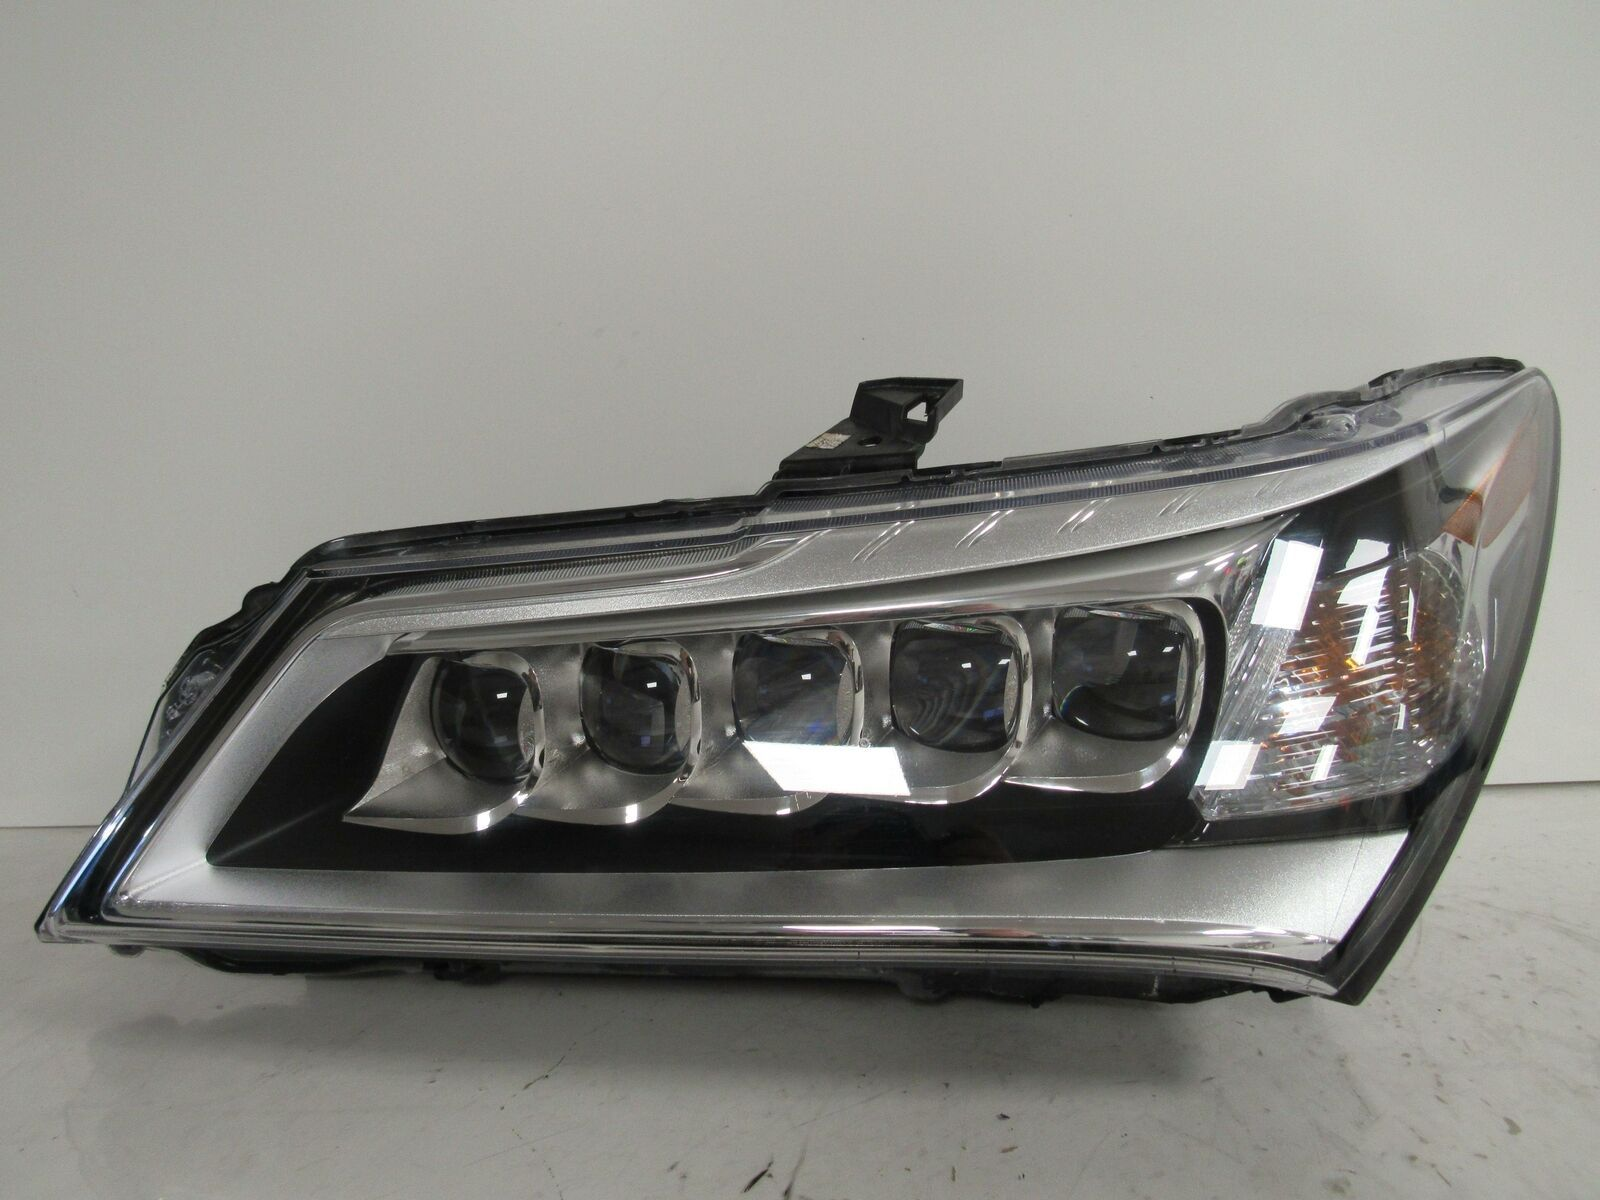 Primary image for 2014 2015 2016 ACURA MDX DRIVER LH LED HEADLIGHT OEM C89L